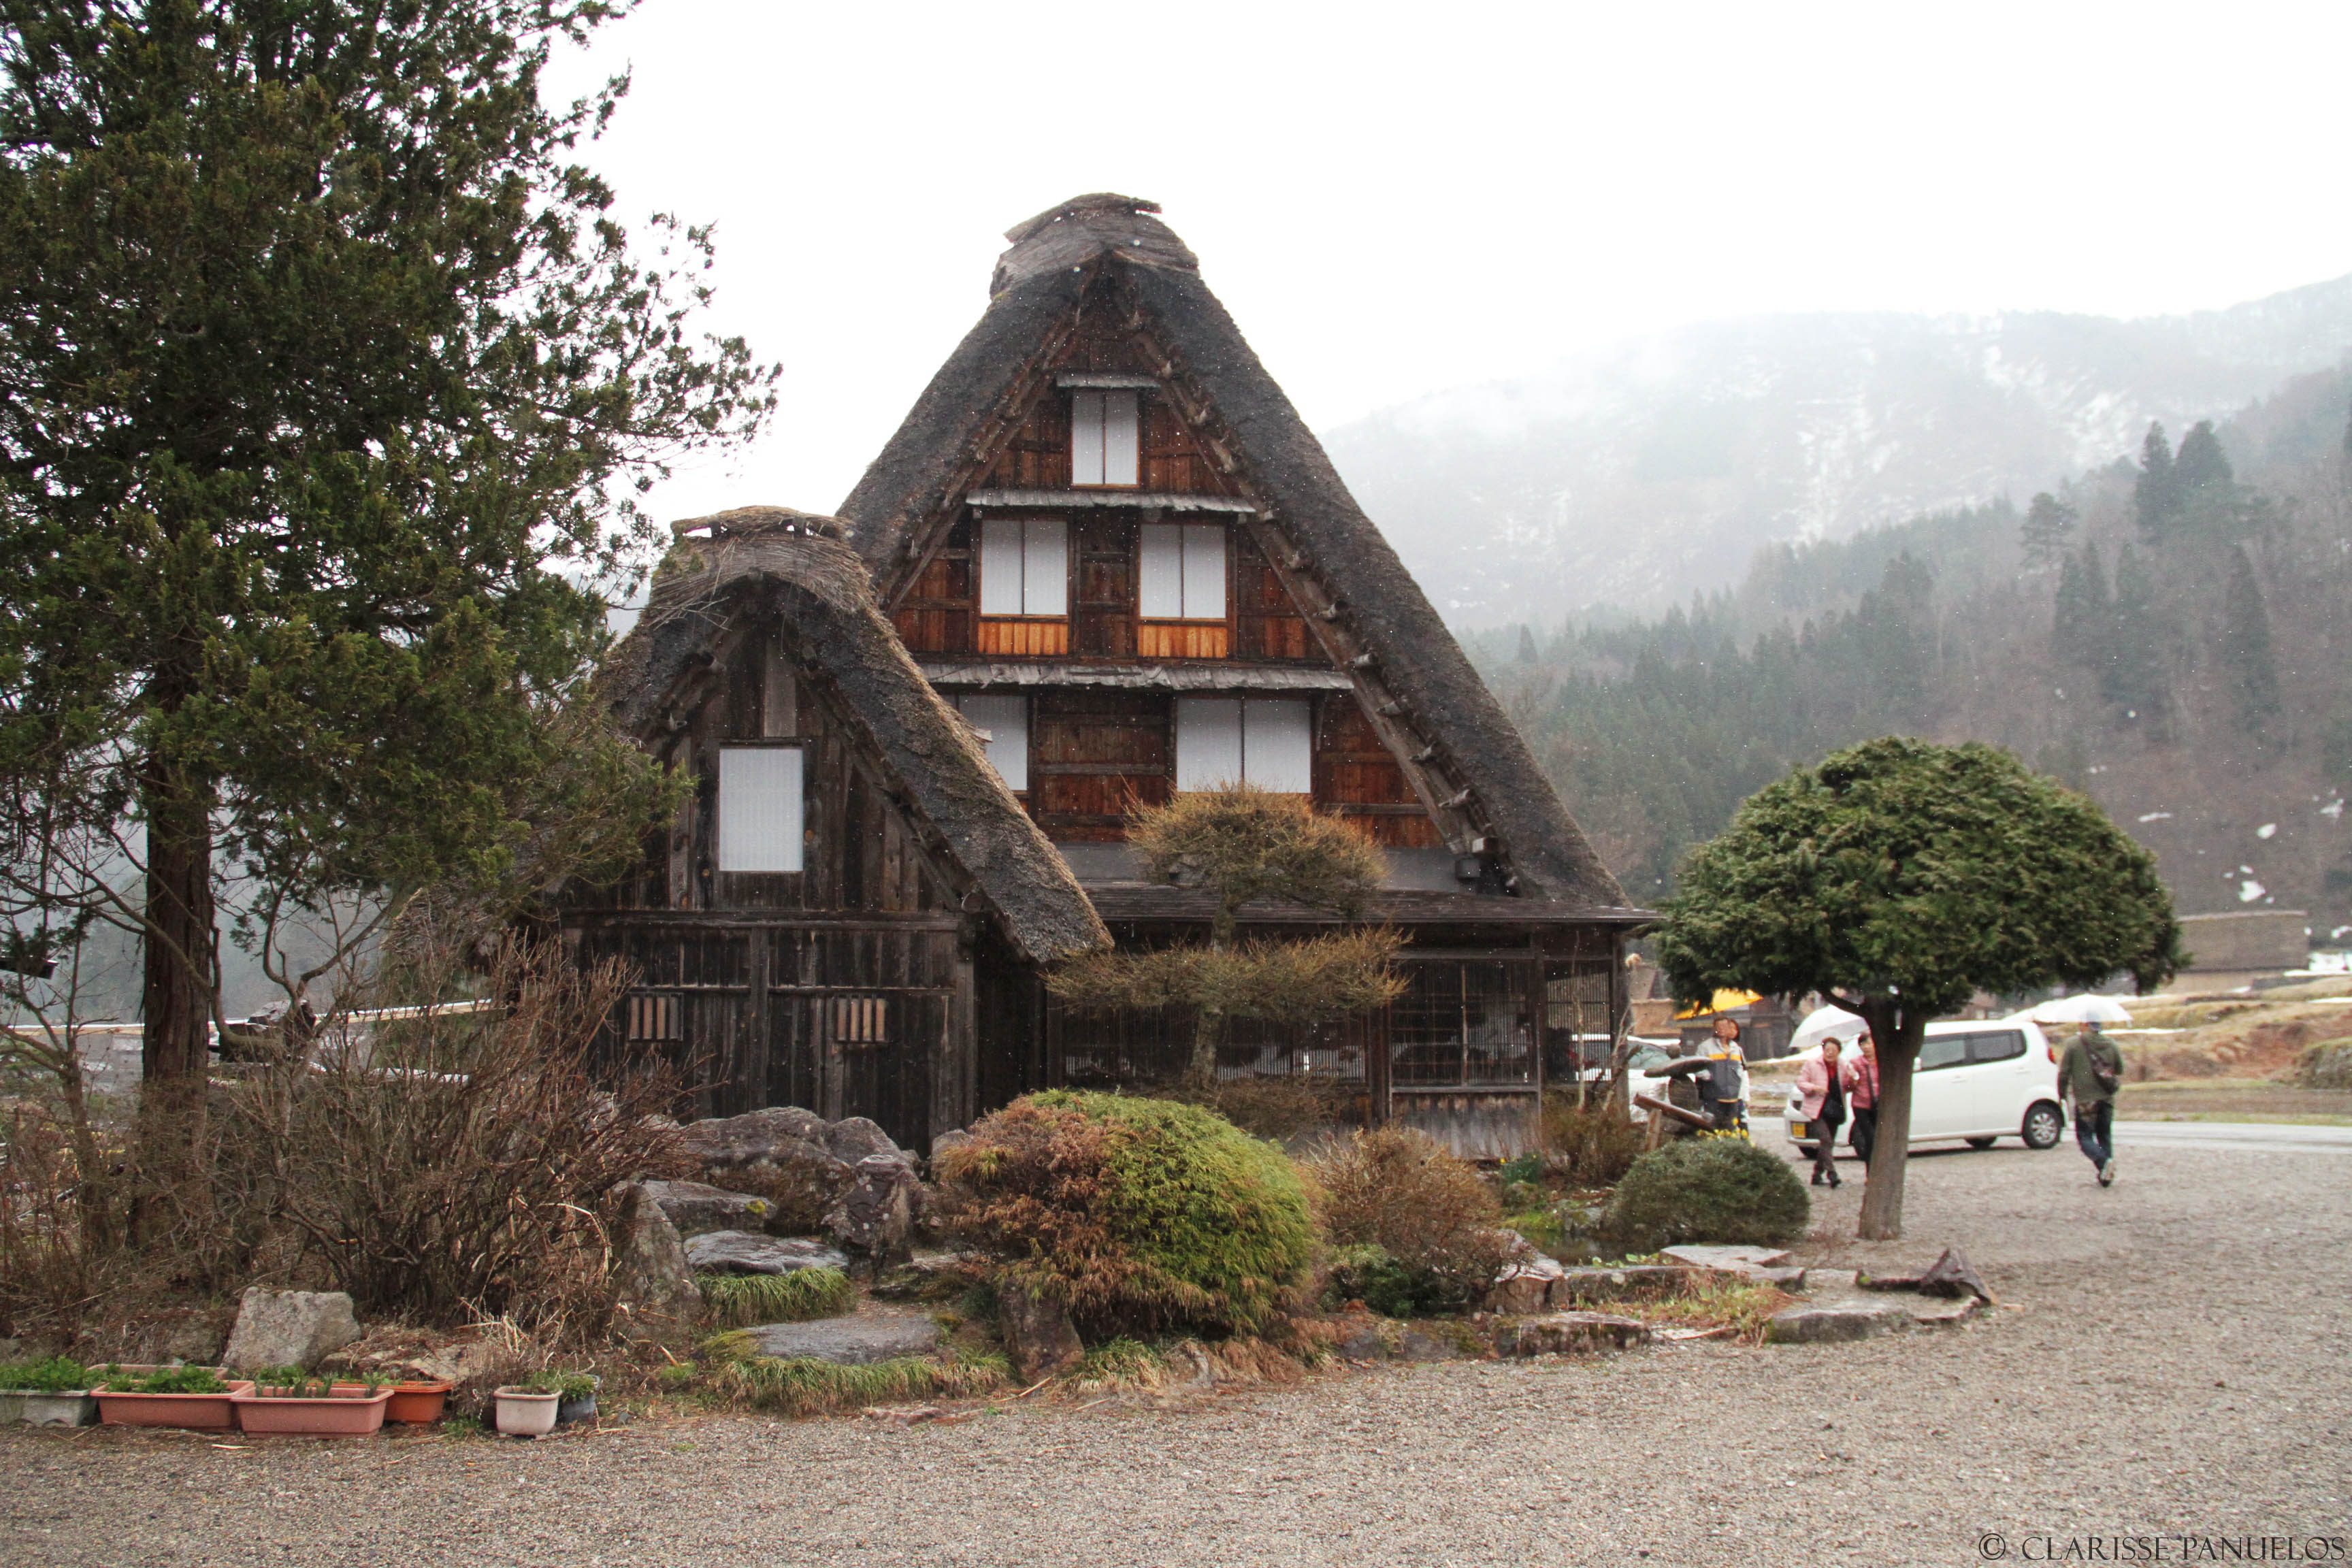 Shirakawago Lunch area 1 - Japan Travel Blog April 2015: Shirakawa-go